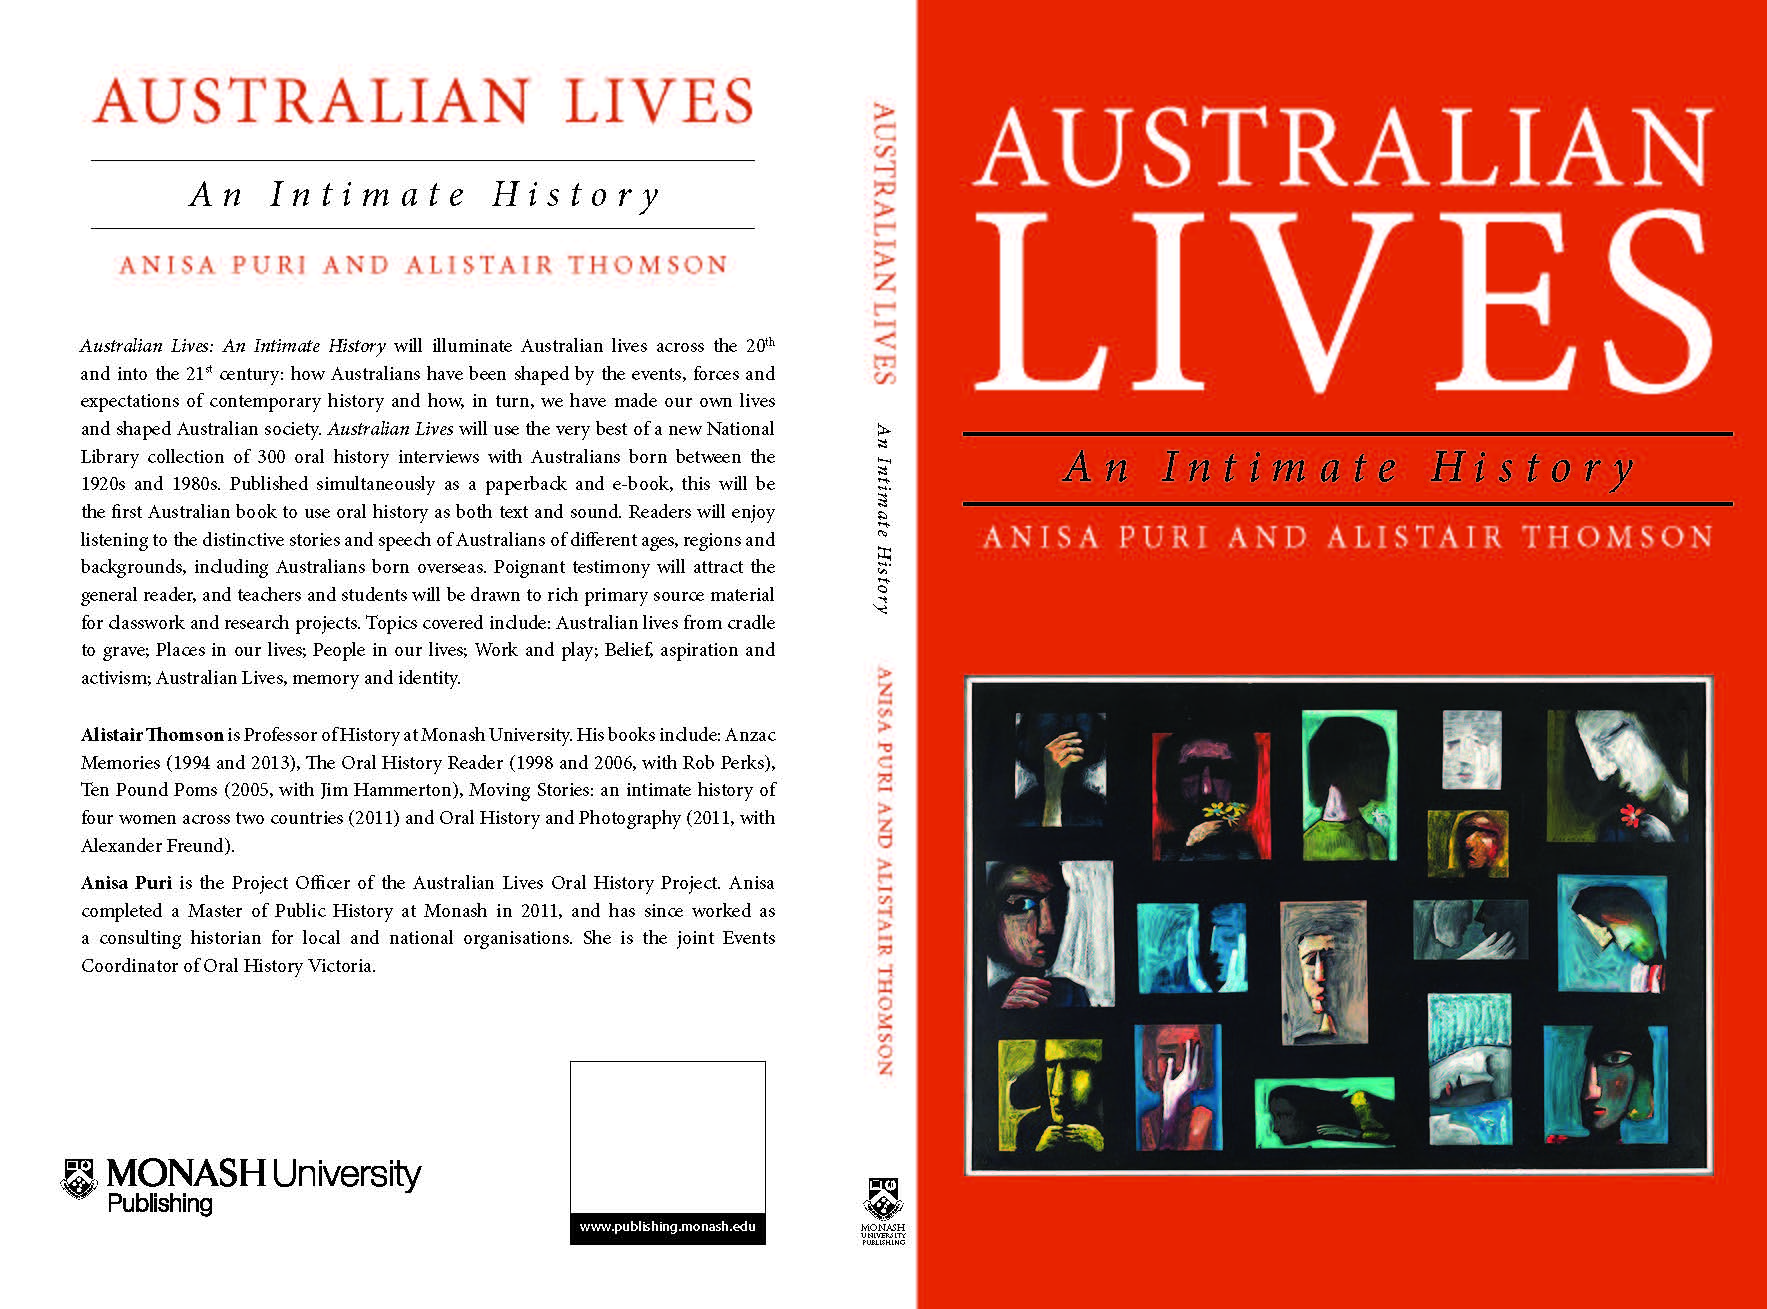 Cover design for Australian Lives